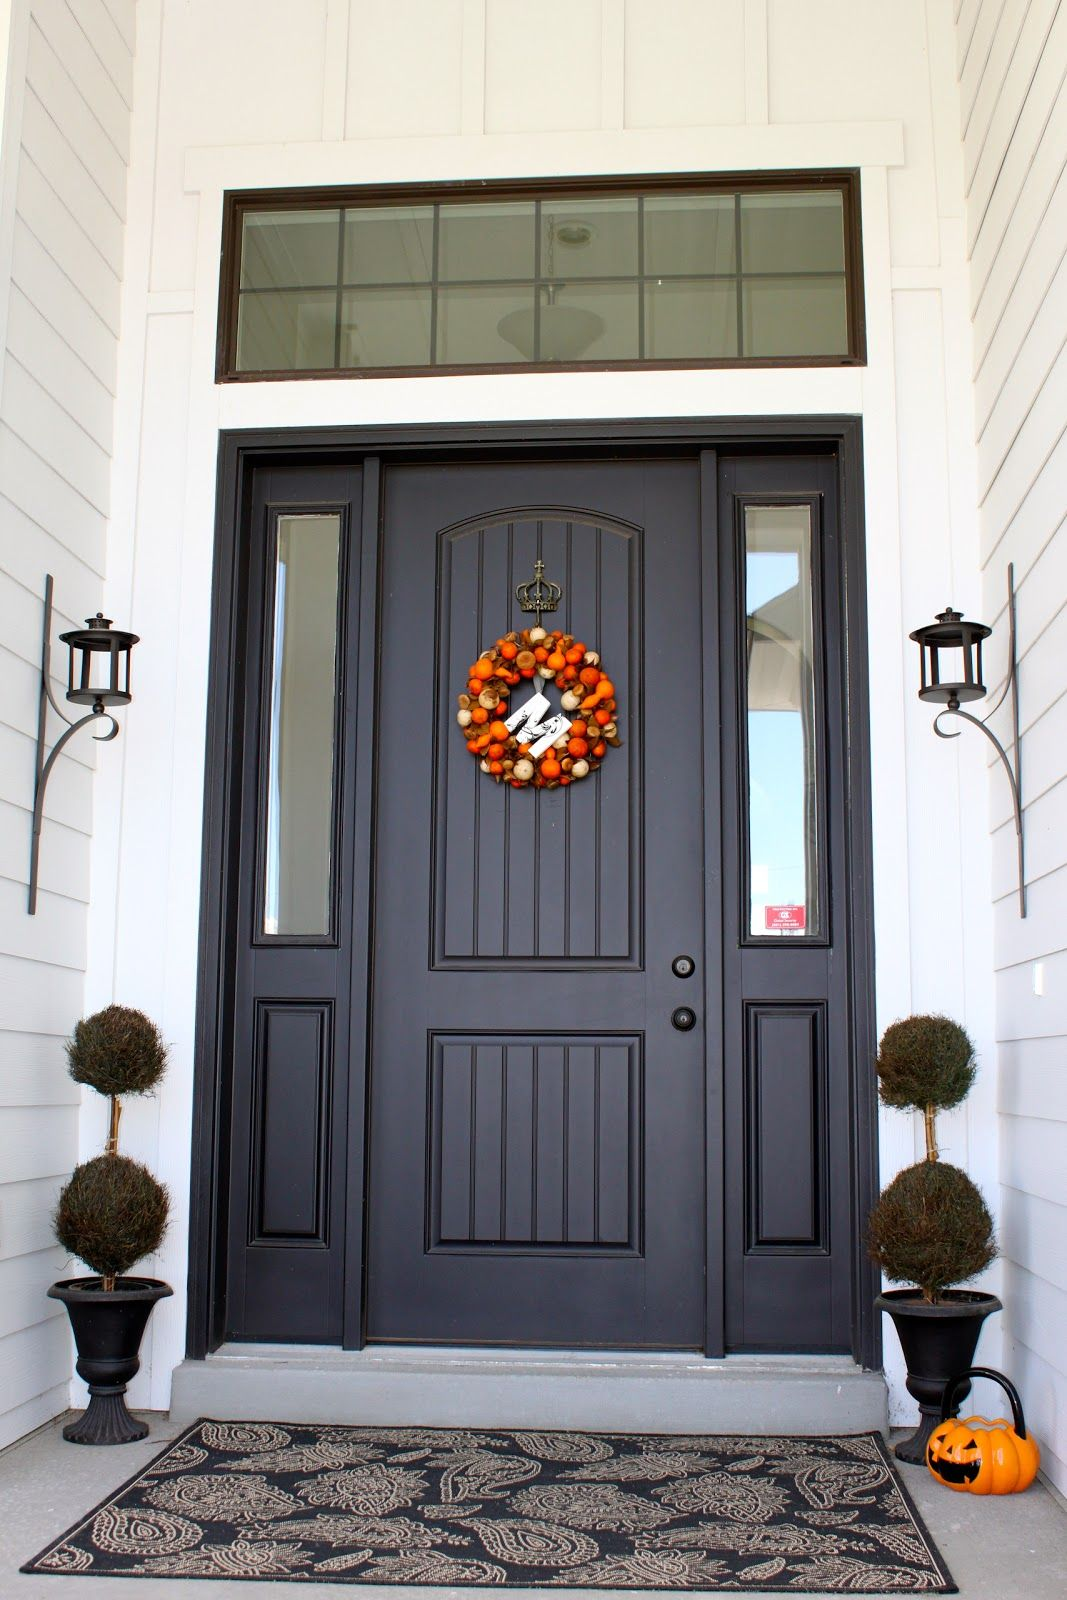 Photo of Last year: This year: I have decided to replace the wreath on my front door since …